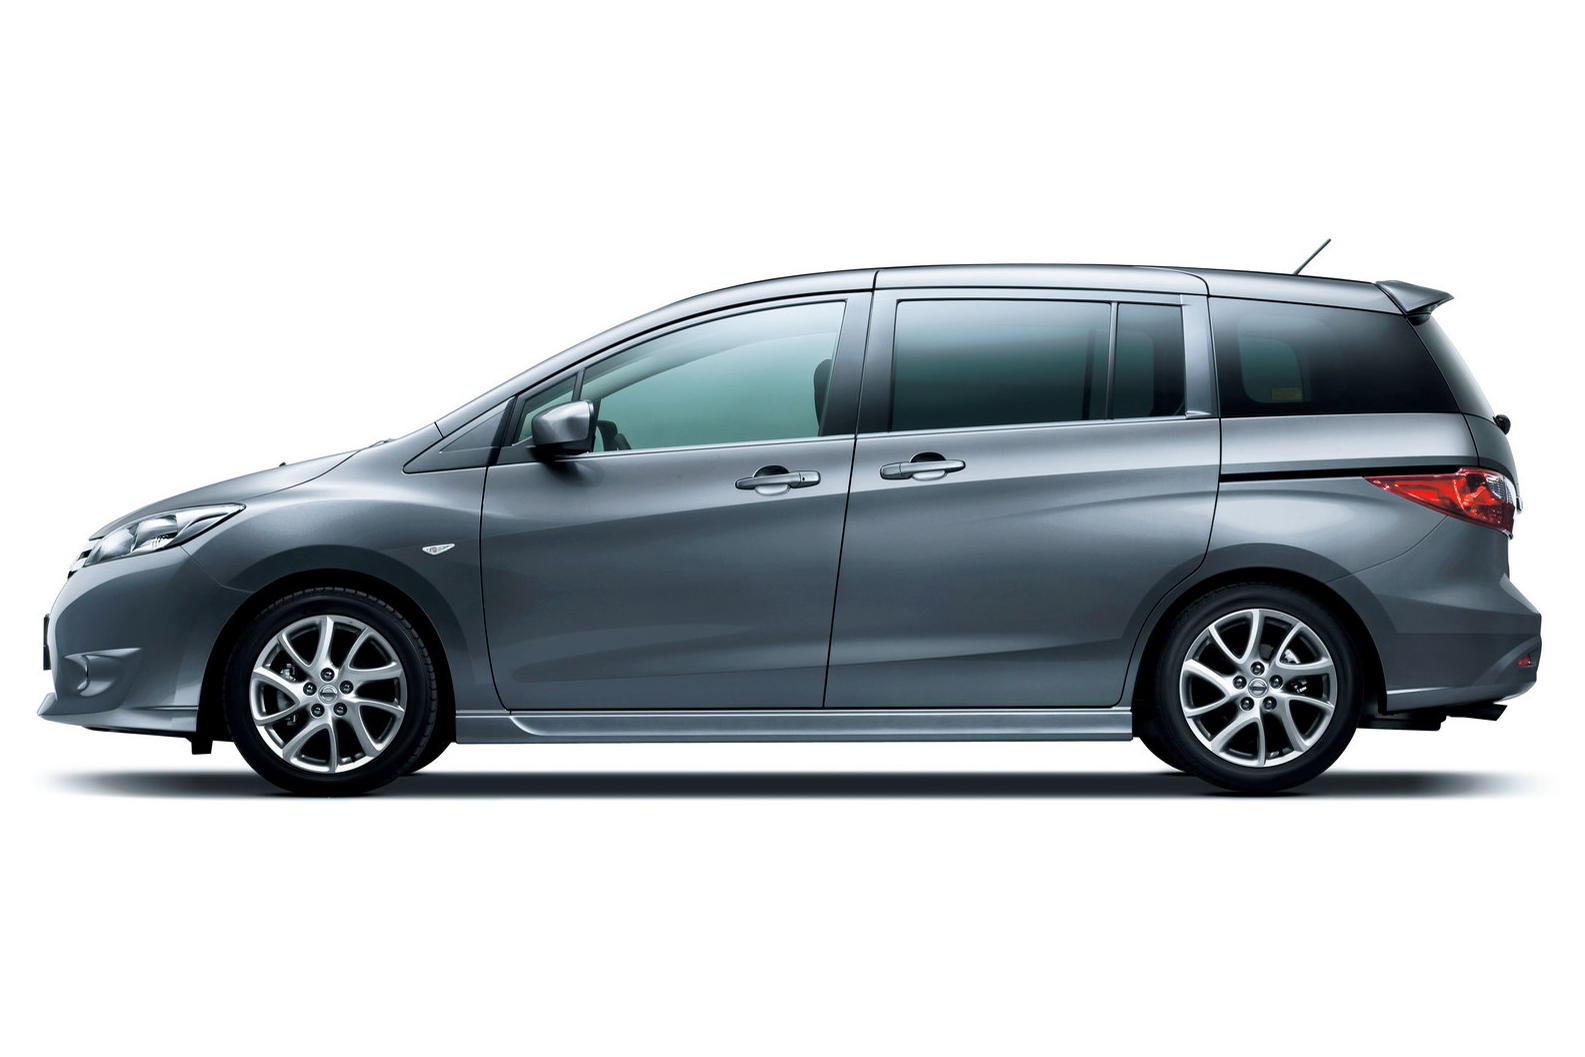 Nissan 8 Seater >> Nissan Launches Lafesta Highway Star 7-Seater MPV in Japan - autoevolution